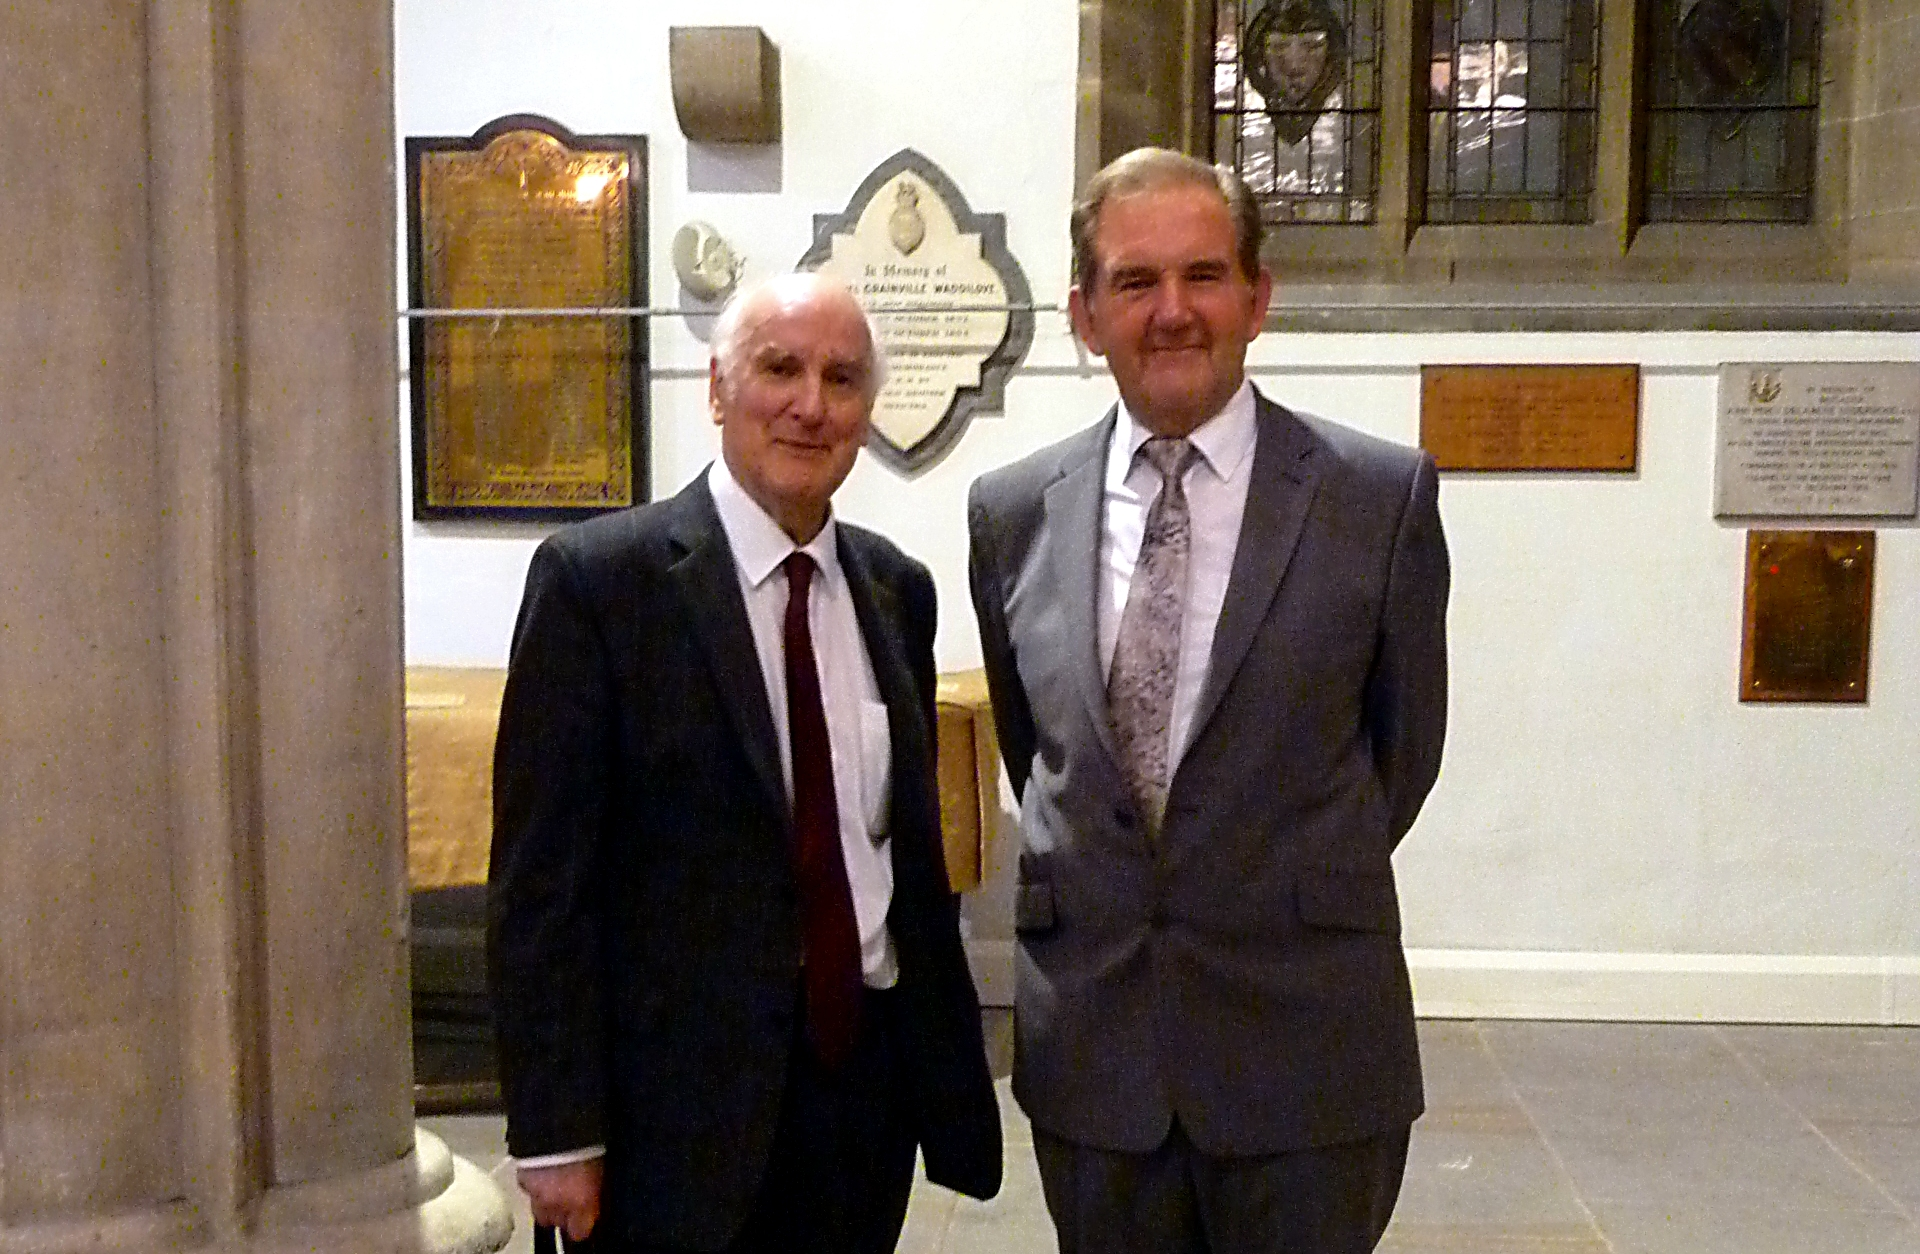 PHS Meeting Monday 7th October 2013 - Stephen Sartin & David Hindle